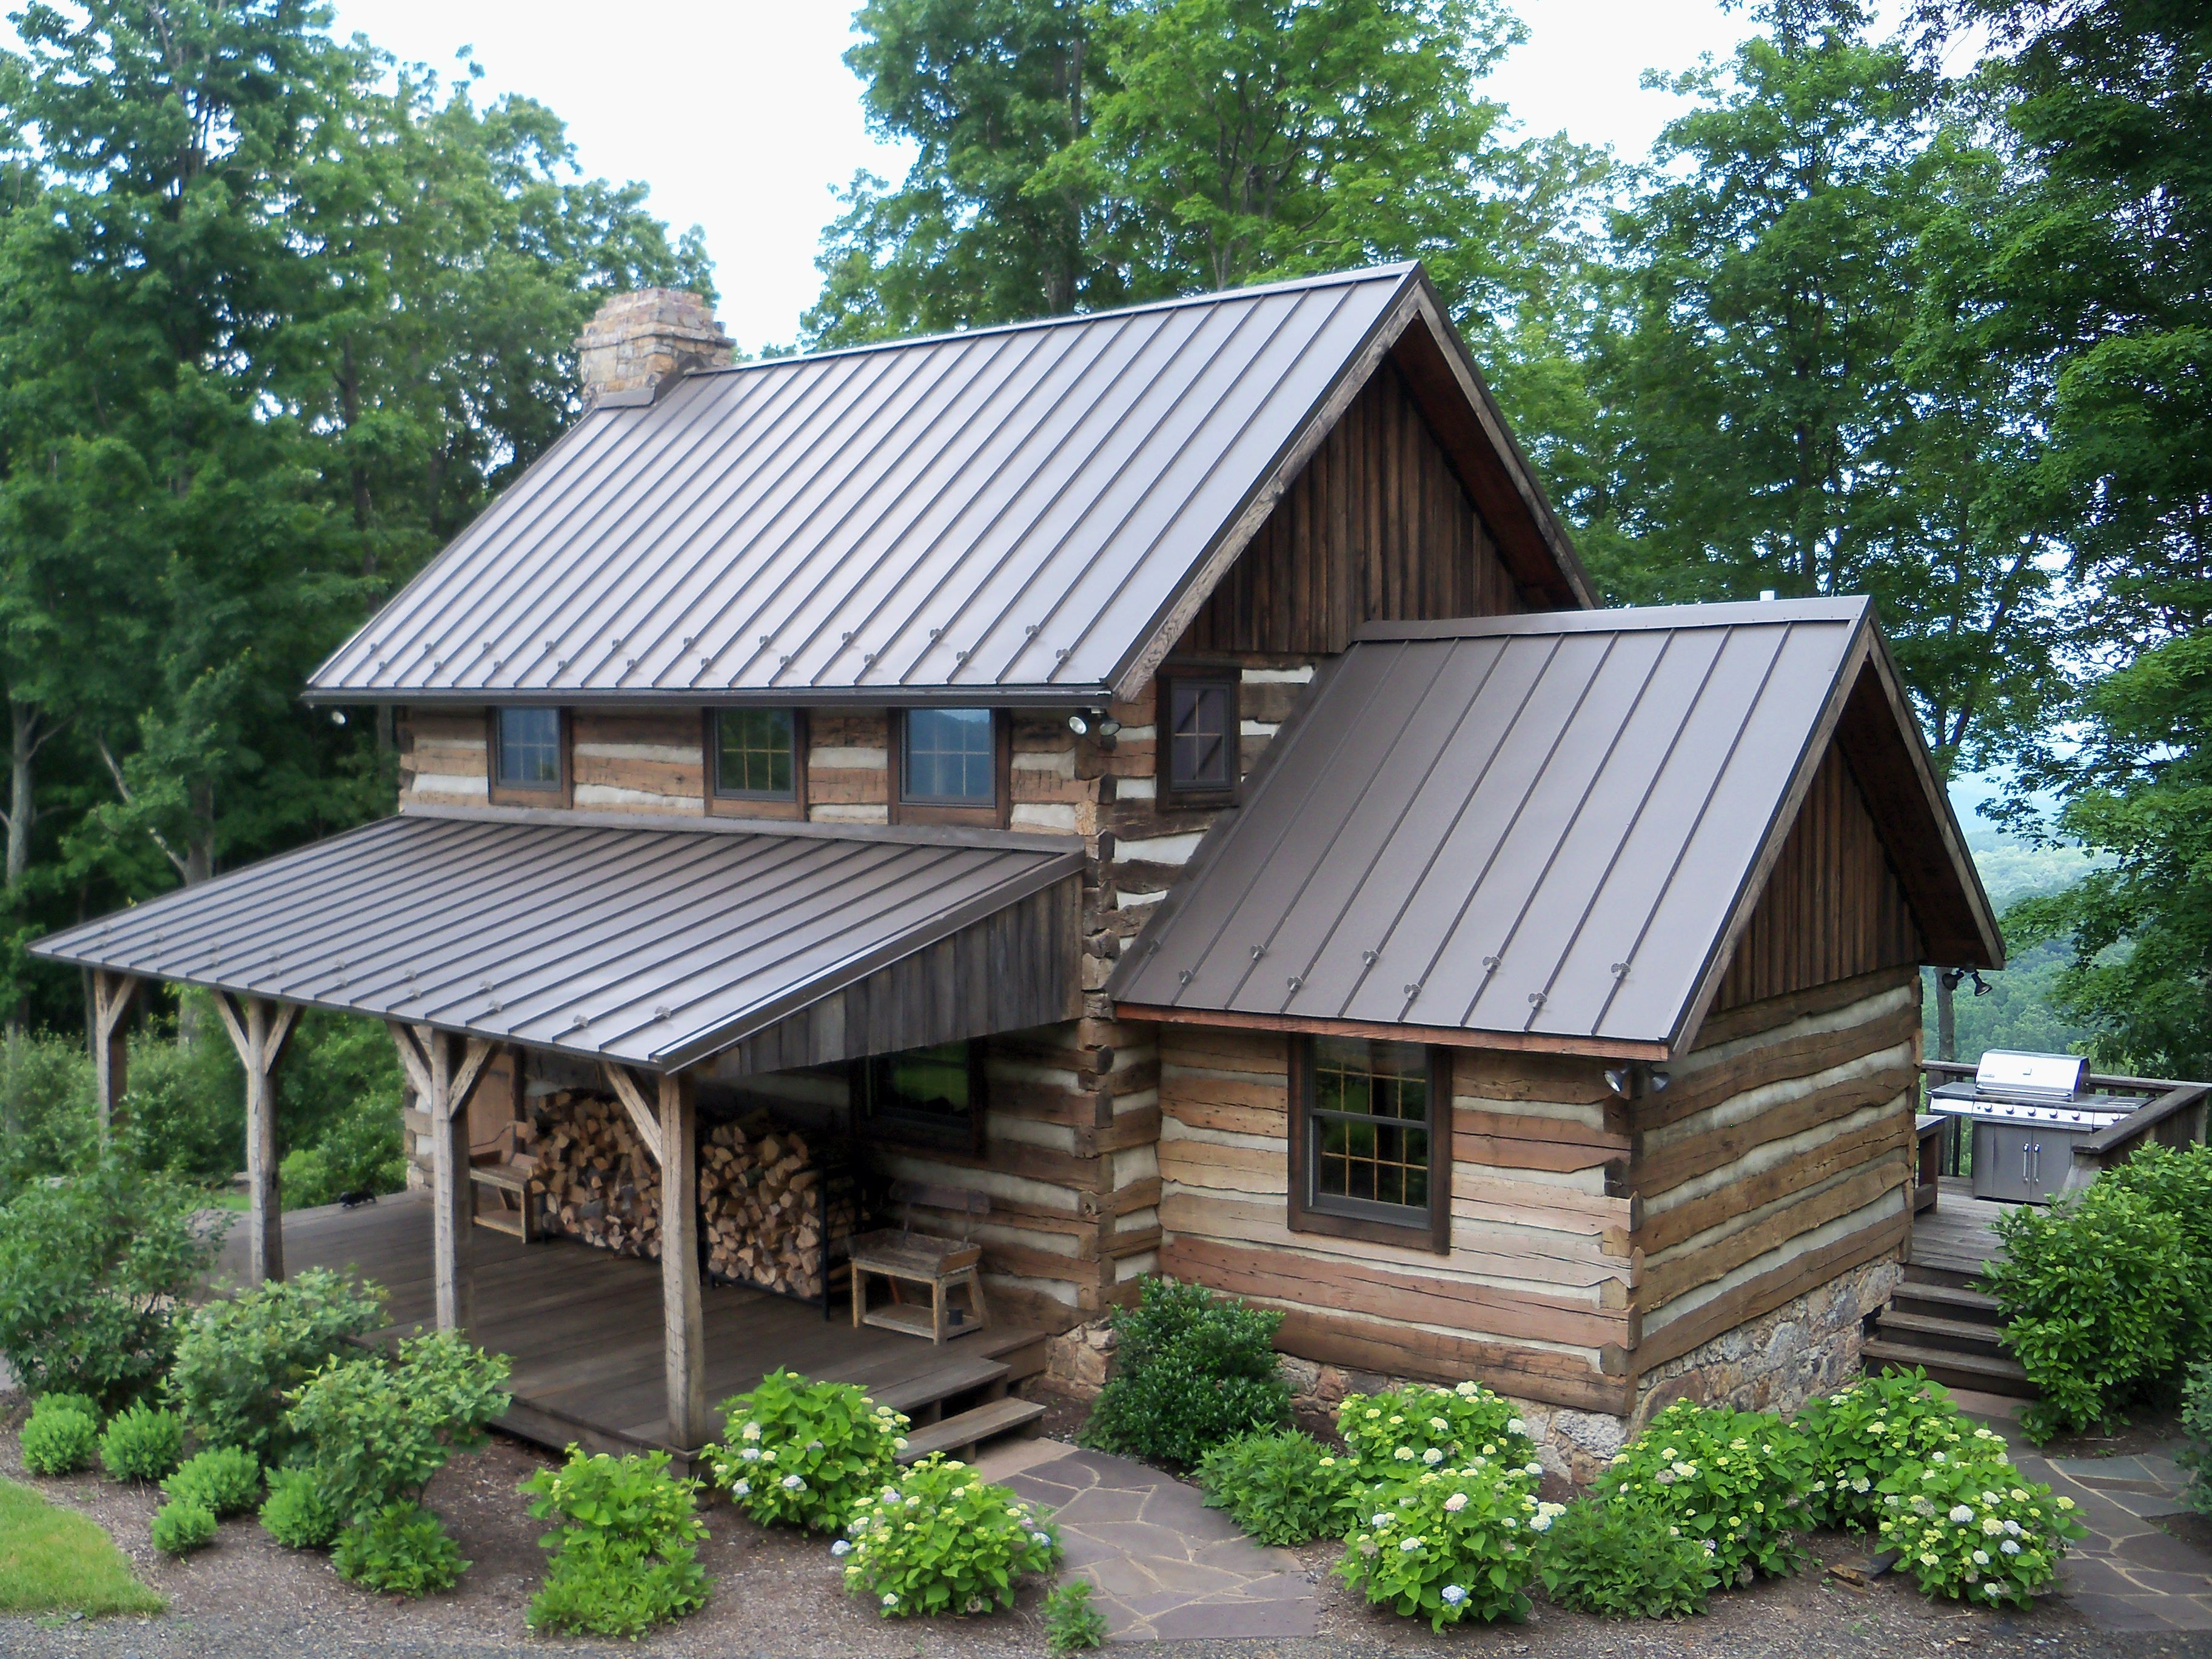 Our bath county cabin project a country log home retreat ready for relaxing summer days - Summer house plans delight relaxation ...